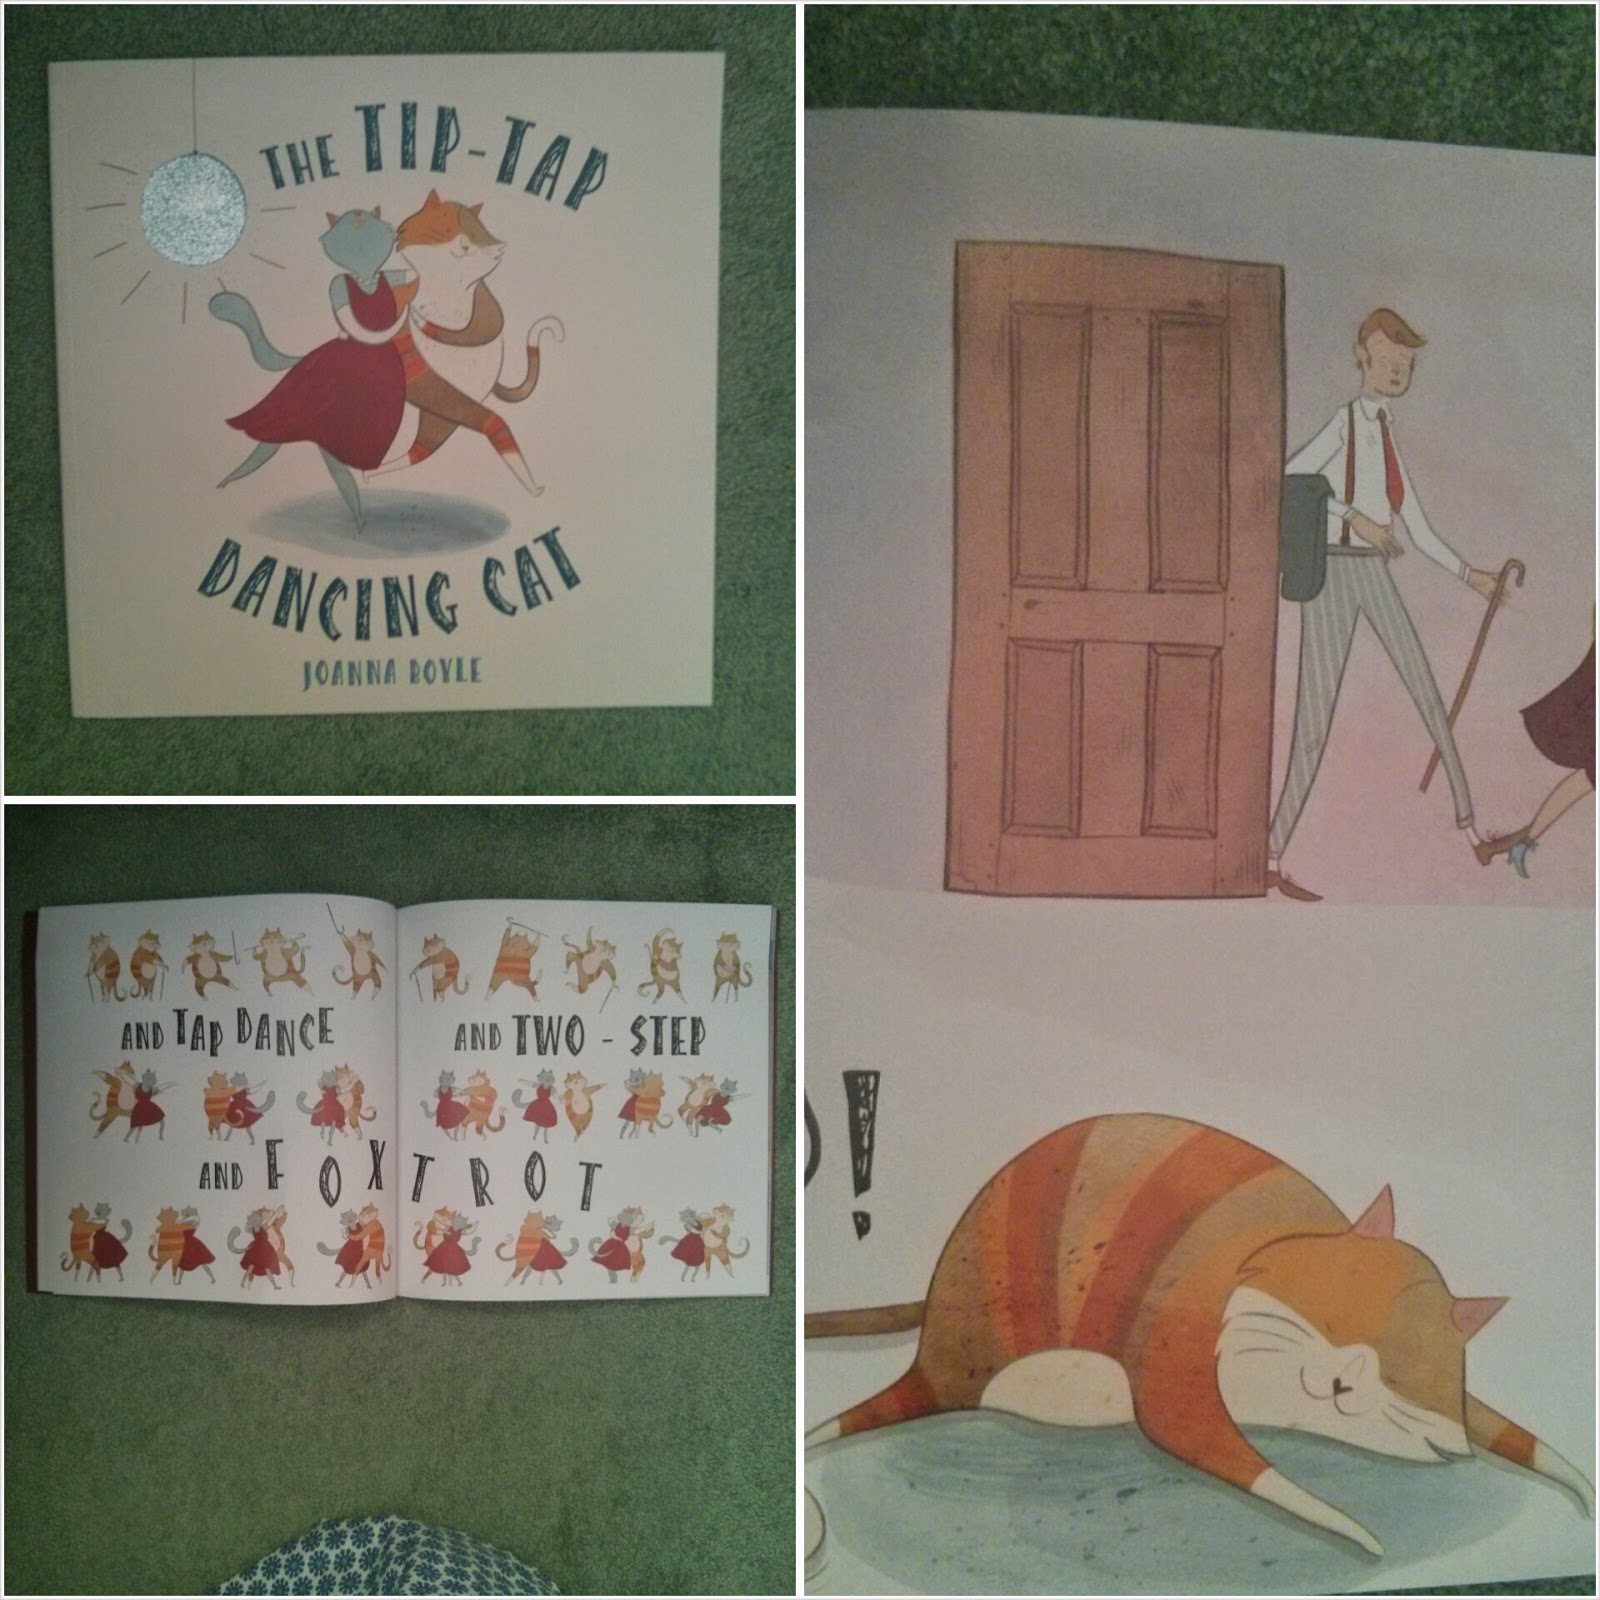 The Tip-Tap Dancing Cat book review